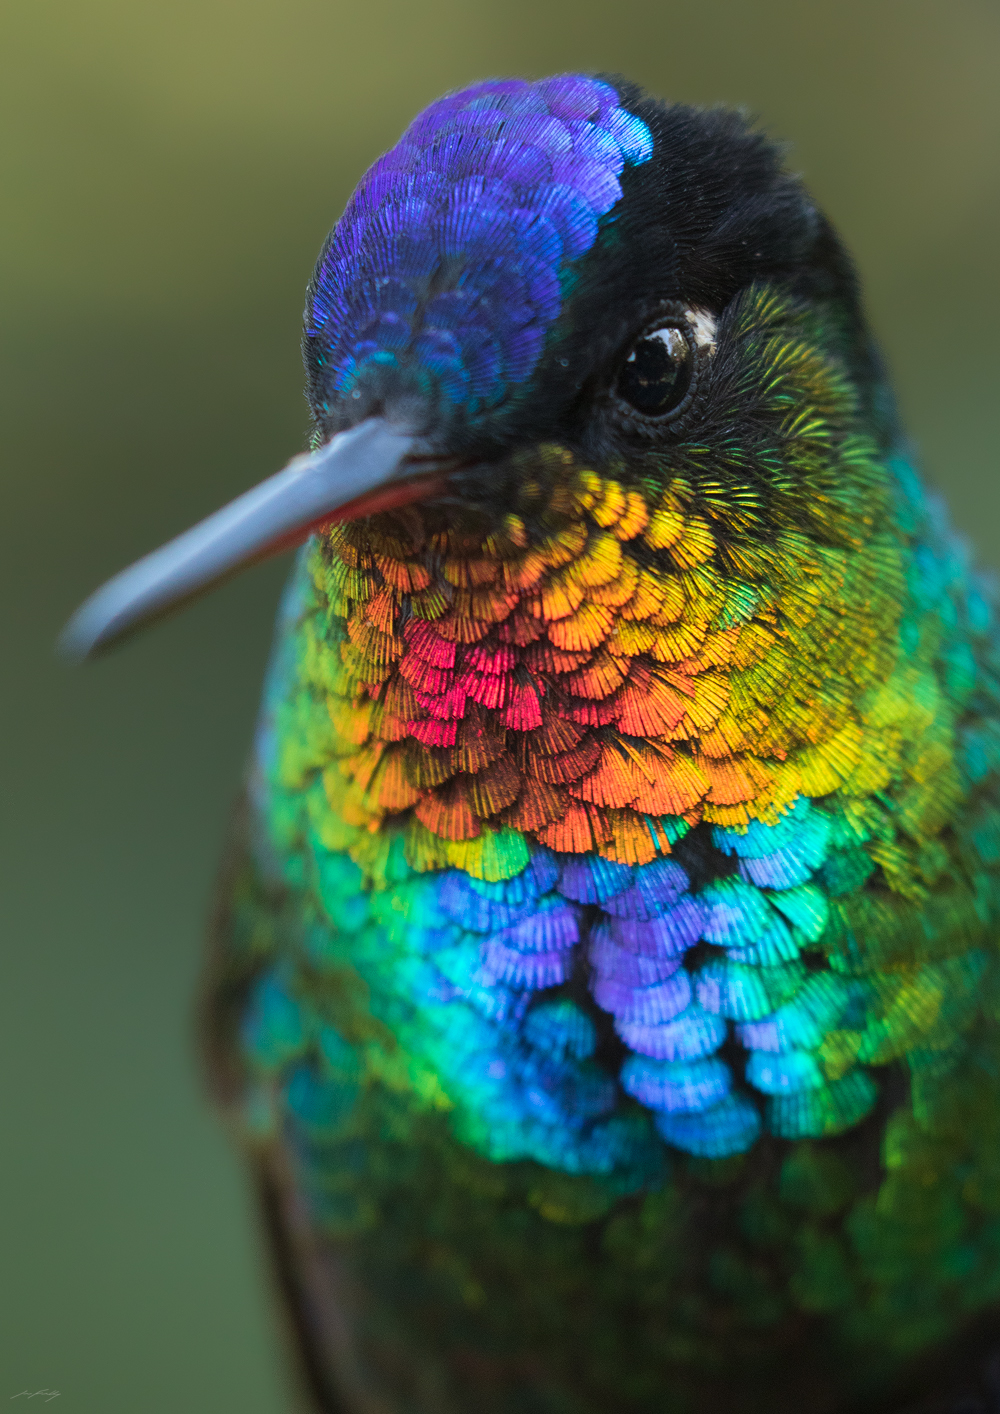 "Few other birds rival the incredible iridescent colour displayed by this Fiery-throated Hummingbird (Panterpe insignis) - a species endemic to the high mountains of Costa Rica and western Panama. Photographed in the wild with a telephoto lens and ""extension tubes"" to allow extremely close focus."